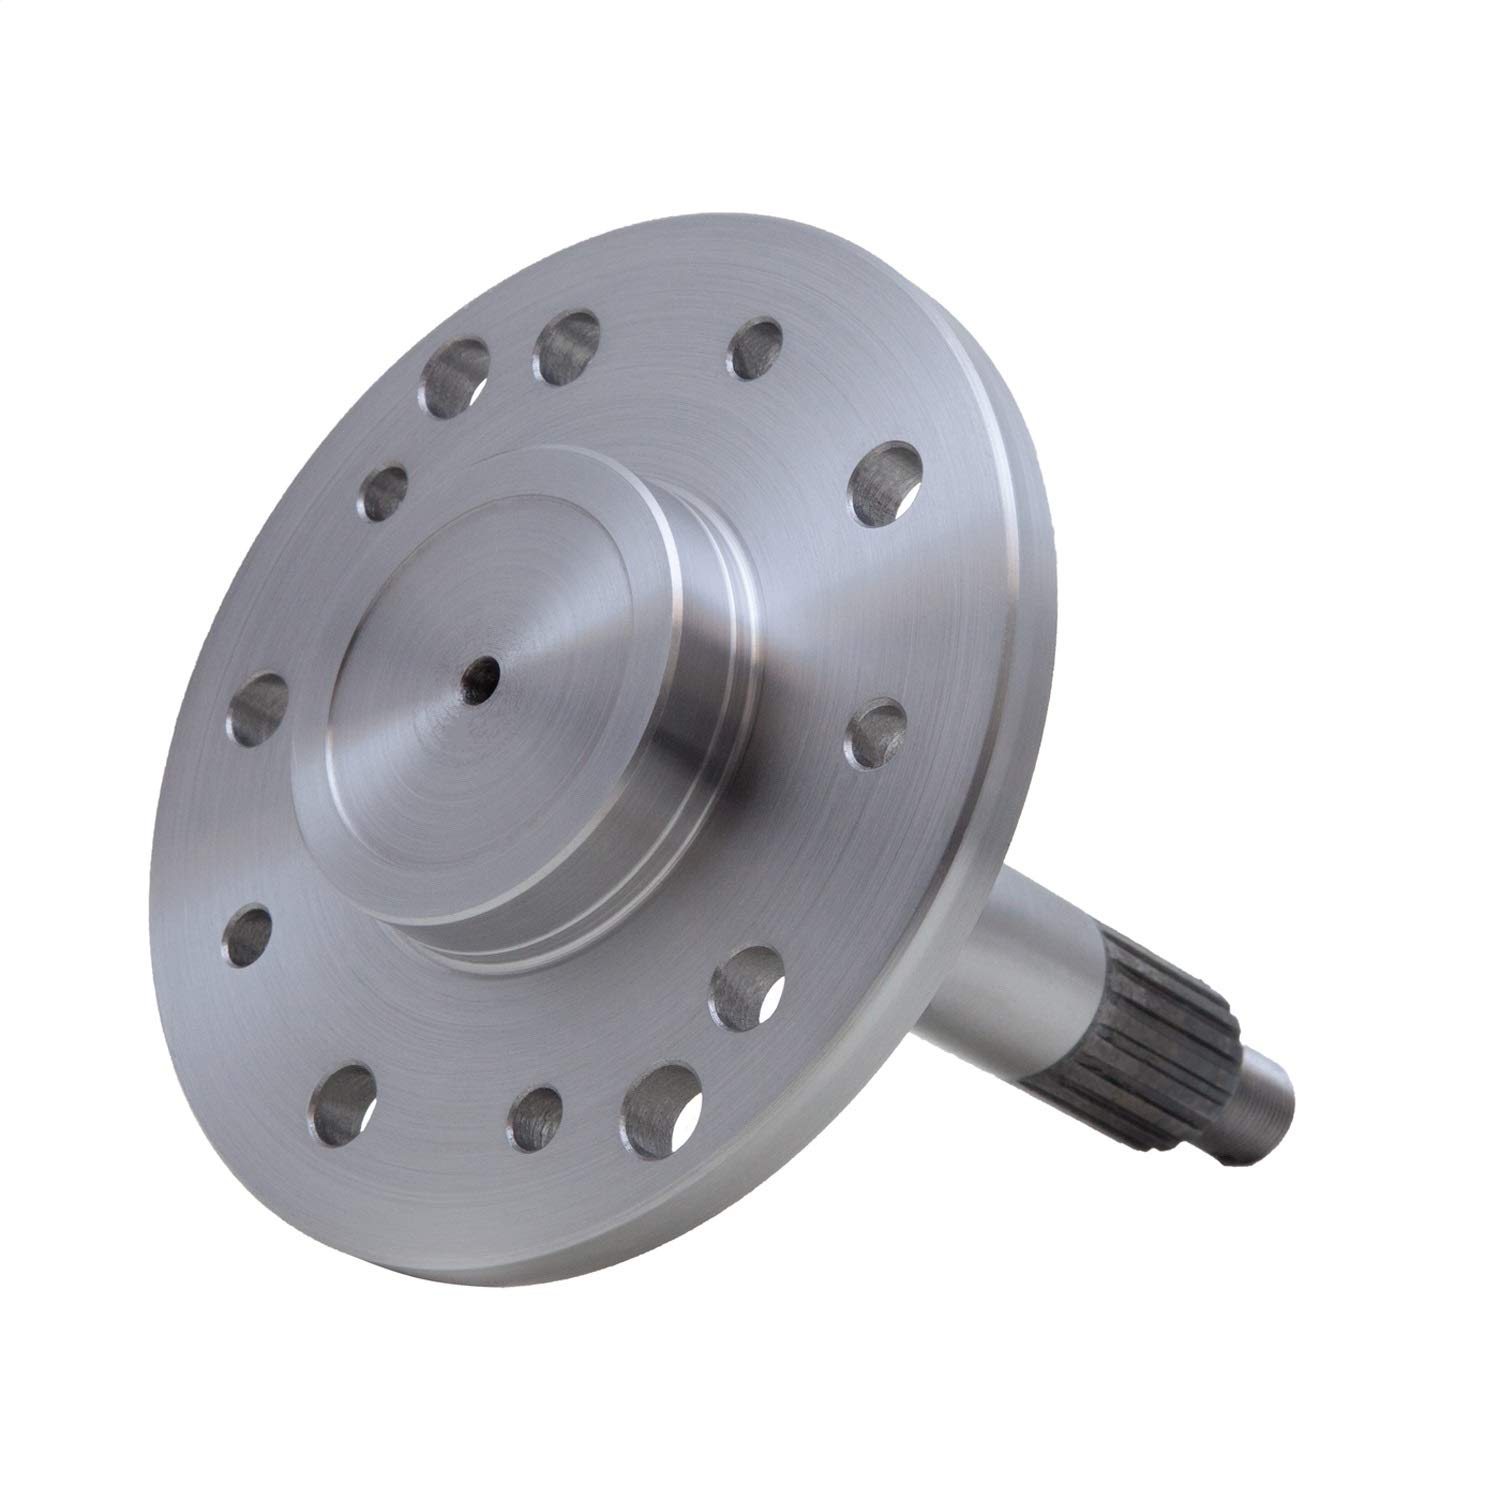 Yukon Gear /& Axle Outer Rear Wheel Spindle for Chevrolet Corvette Differential YA G3872476